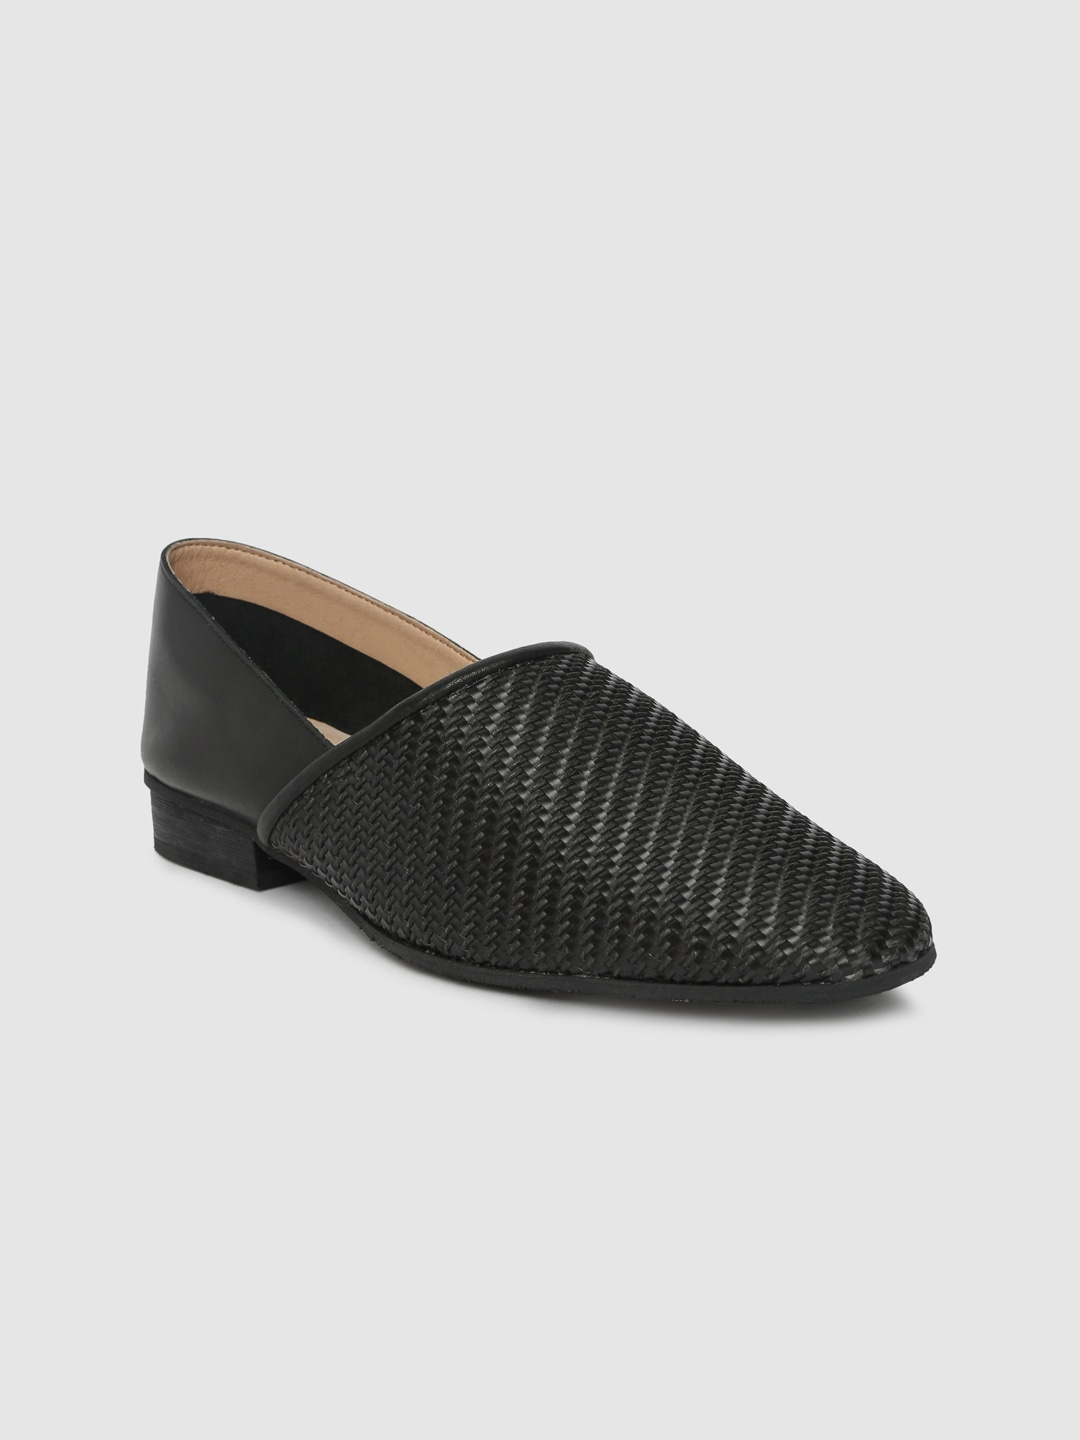 Black Textured Leather Slip-On Shoes